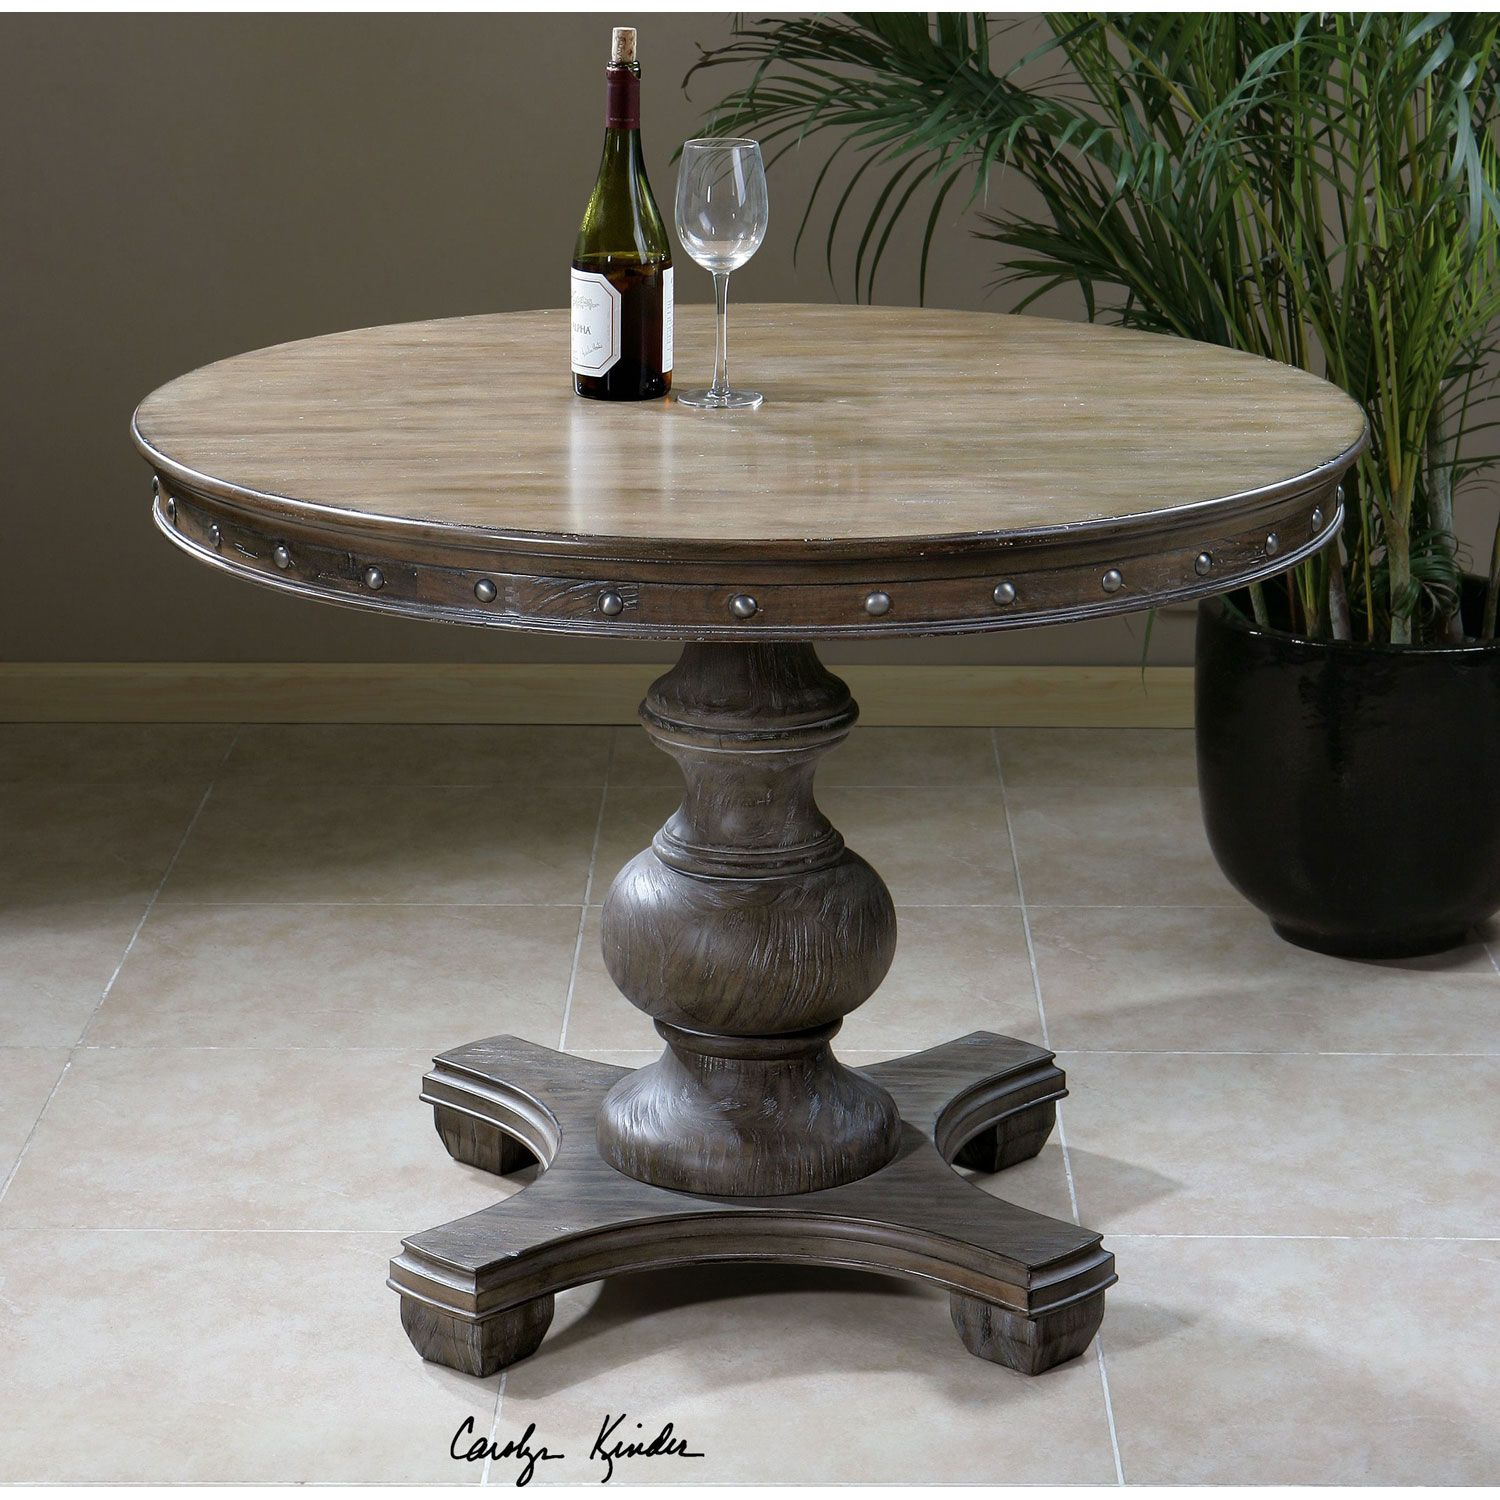 Uttermost Sylvana Light Gray 42 Inch Round Table 24390 Bellacor Dining Table Round Accent Table Round Dining Table